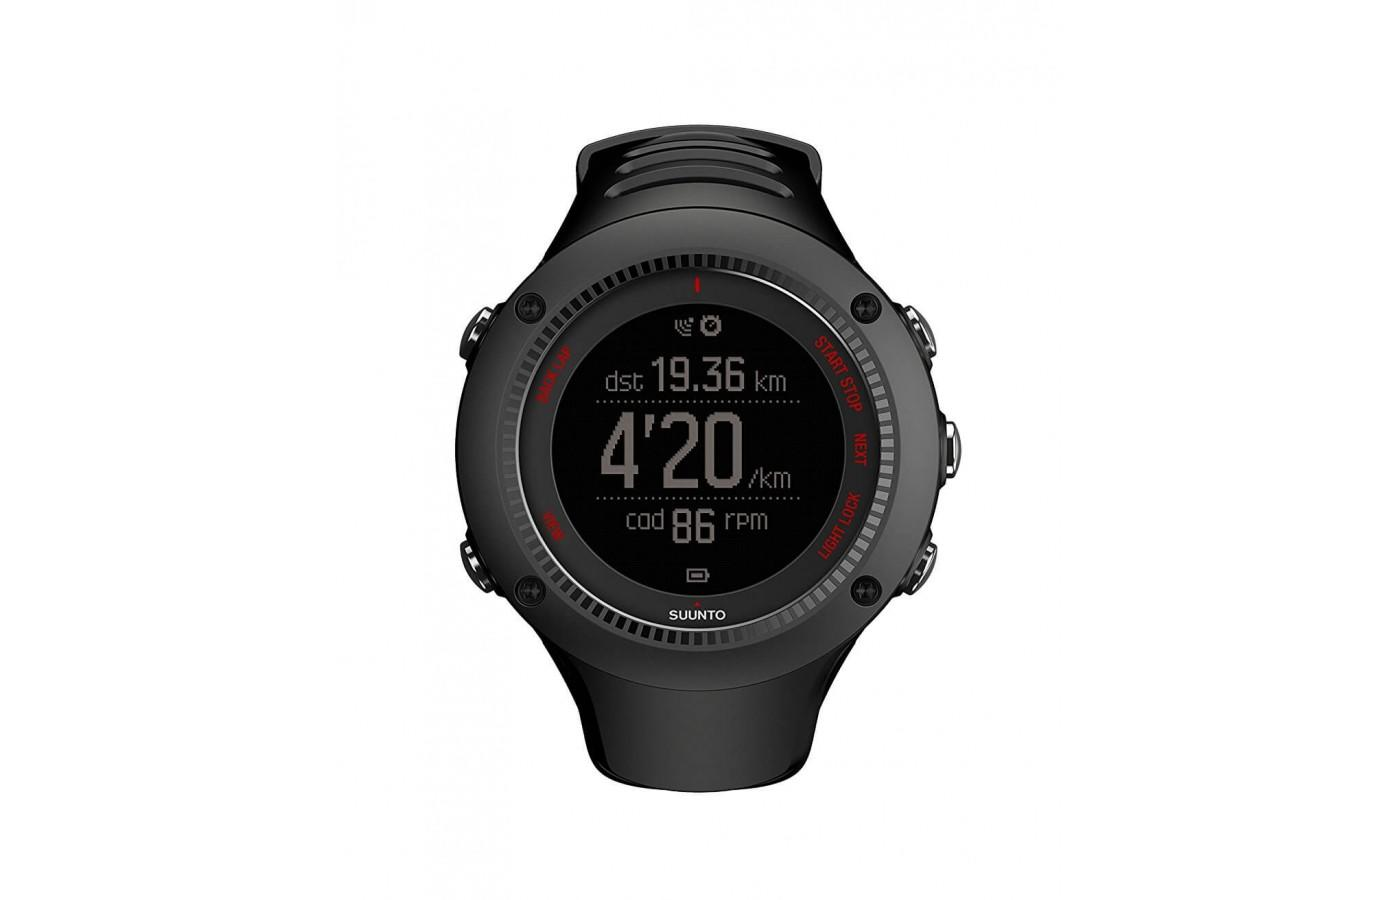 the Suunto Ambit Run has an easy-to-read display